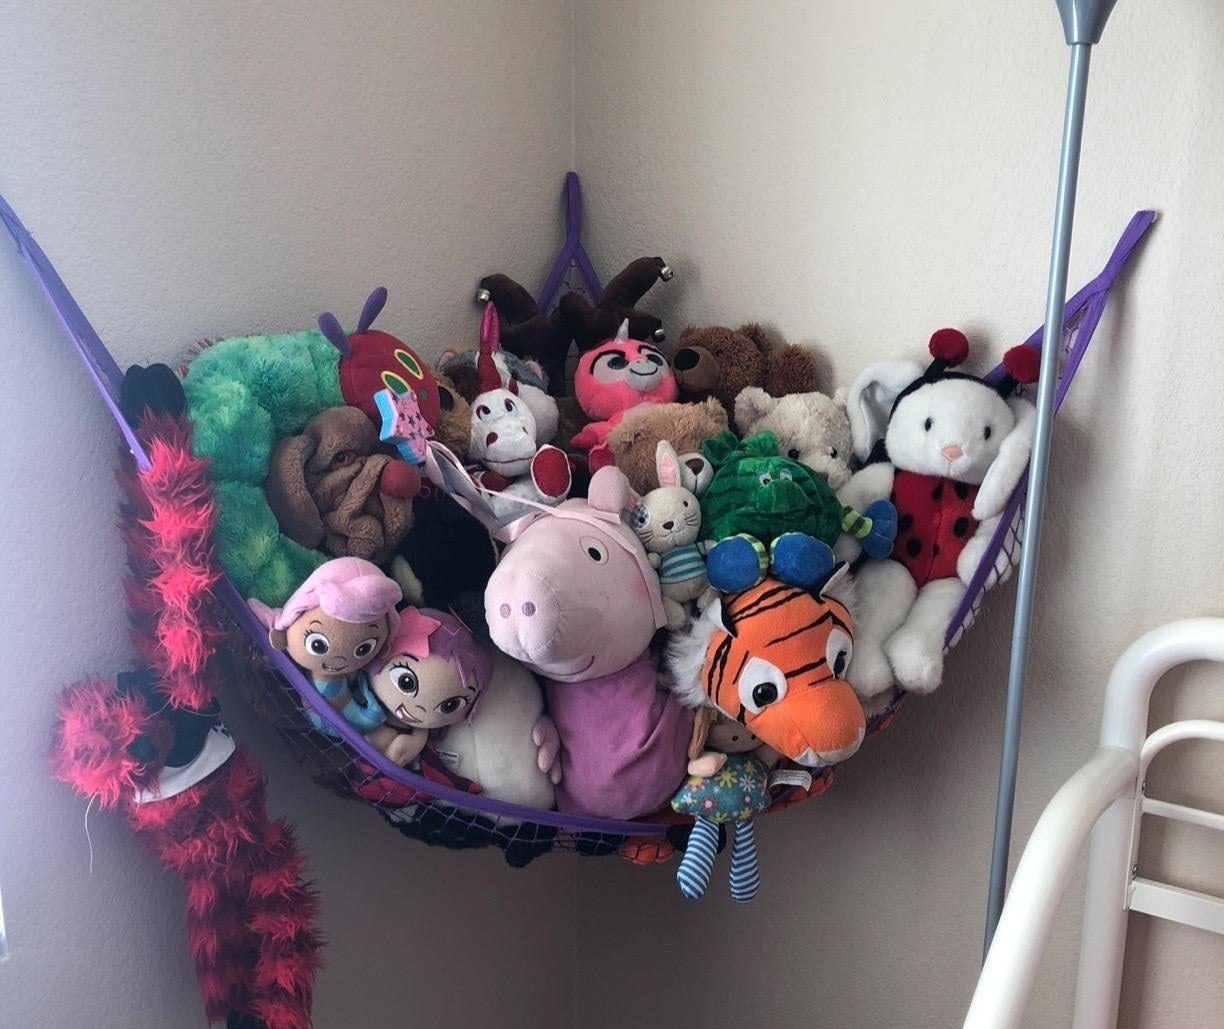 reviewer photo showing all their stuffed animals in a purple hammock